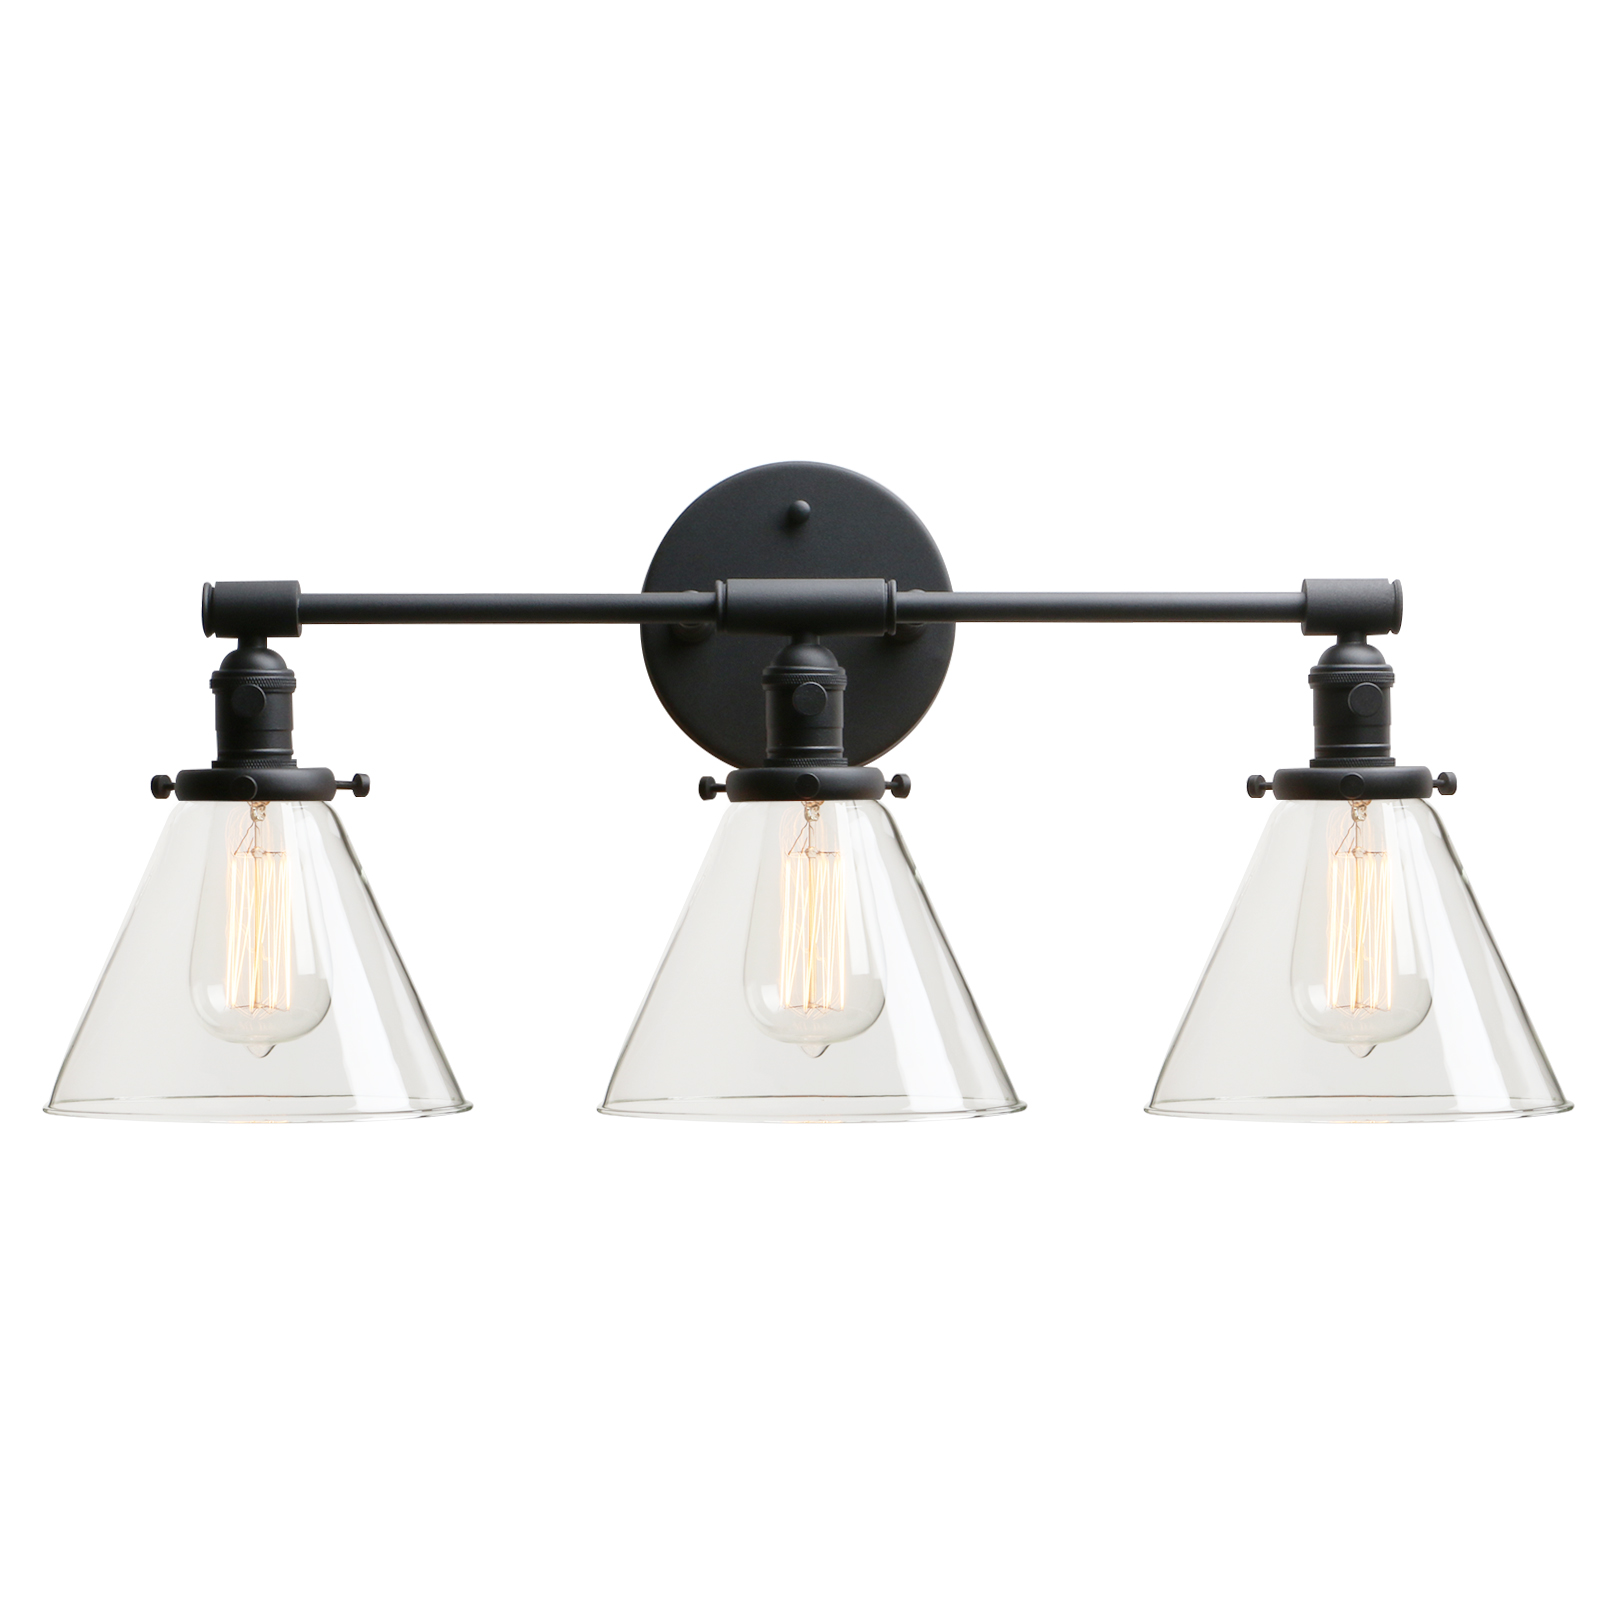 Permo 3 Light Sconce Wall Mount Bathroom Light Fixture With 7 3 Inches Cone Clear Glass Canopy Wall Lamps Aliexpress